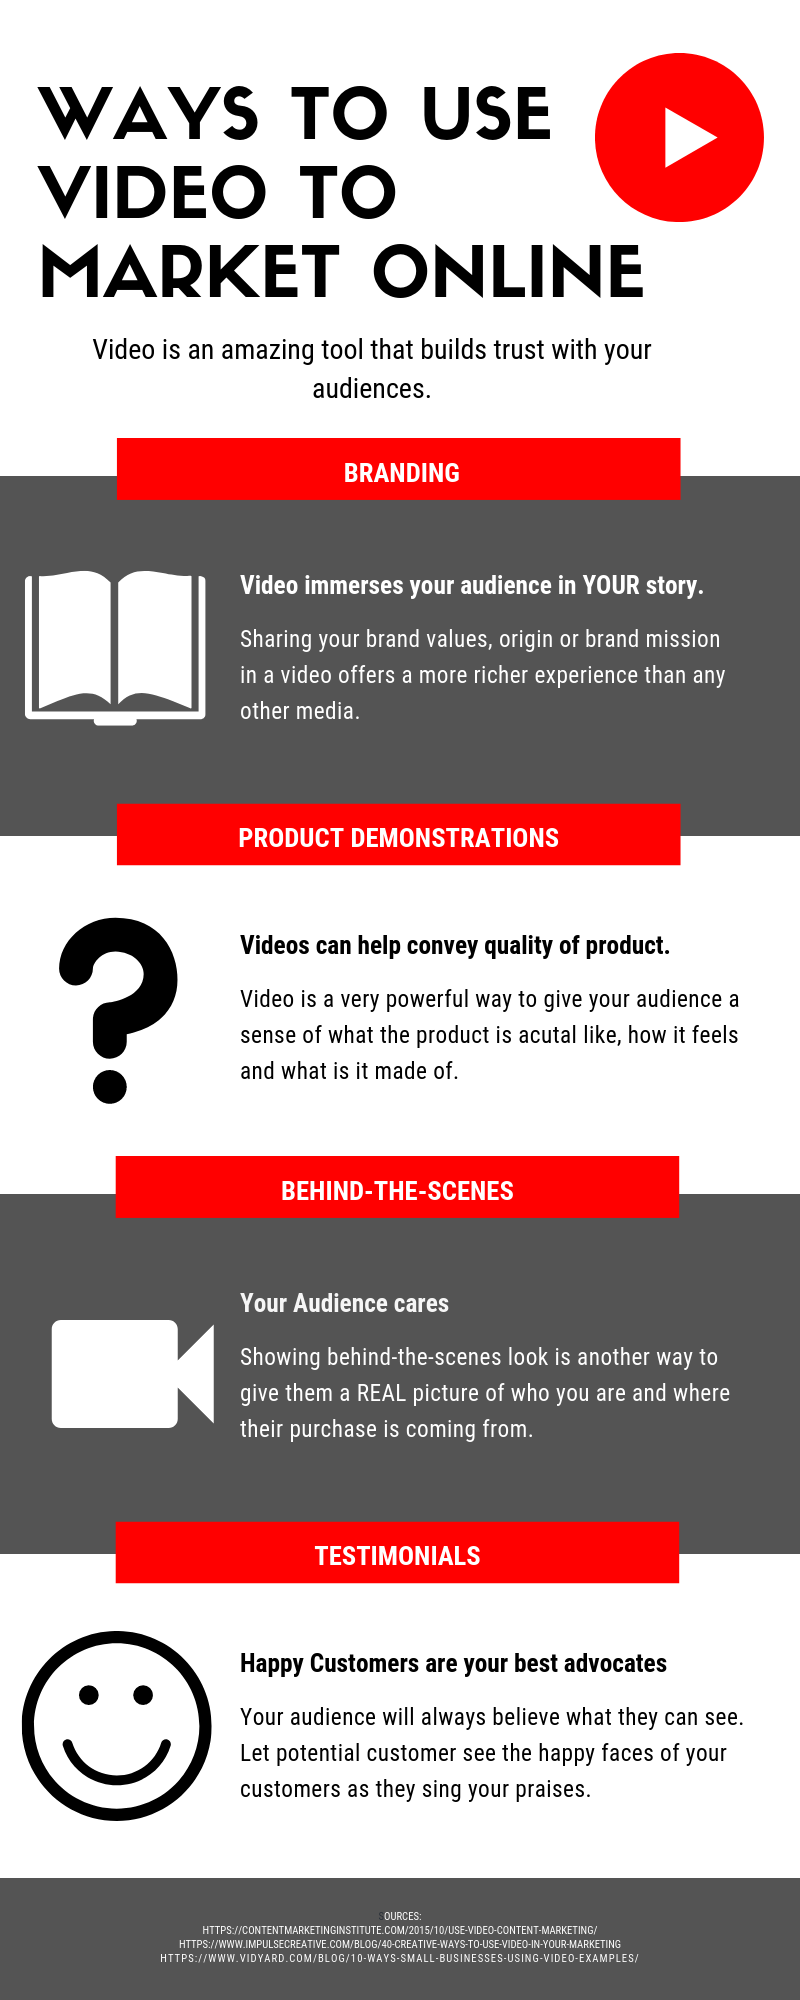 Top Reasons to Use Video.png